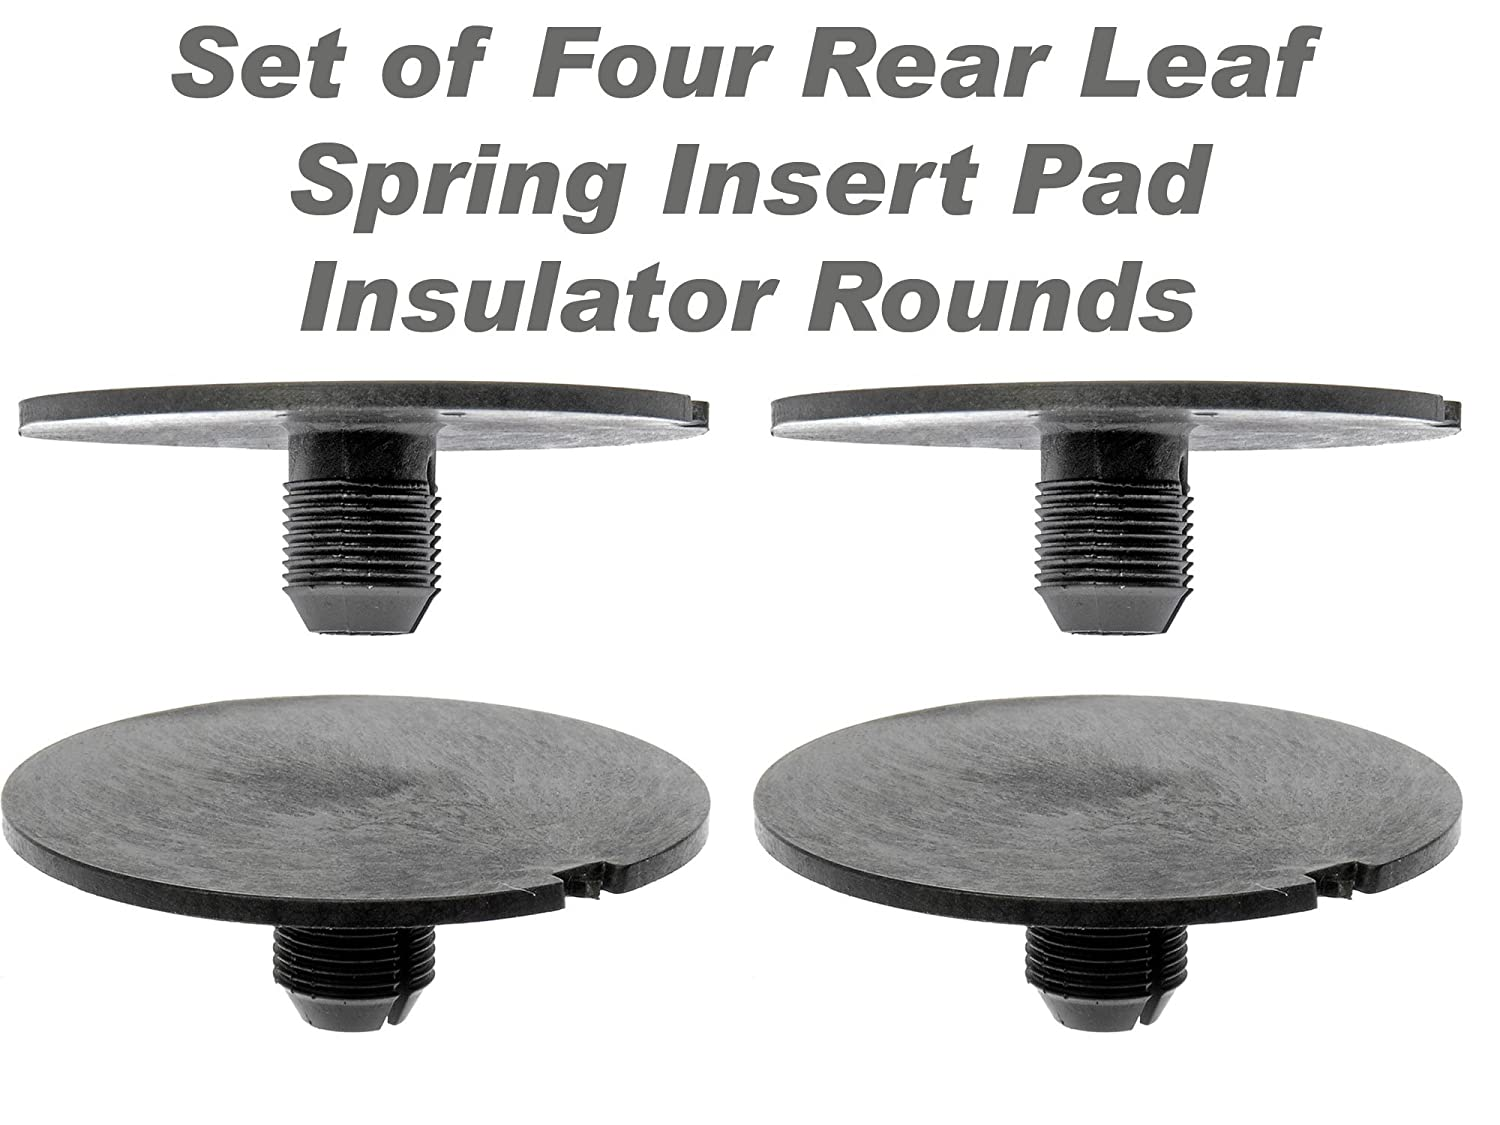 APDTY 035181 Rear Leaf Spring Plastic Insert Pad Spacer Insulator Round Set Of 4 Fits 1998-2011 Chevy GMC Trucks (Replaces GM 20870046)